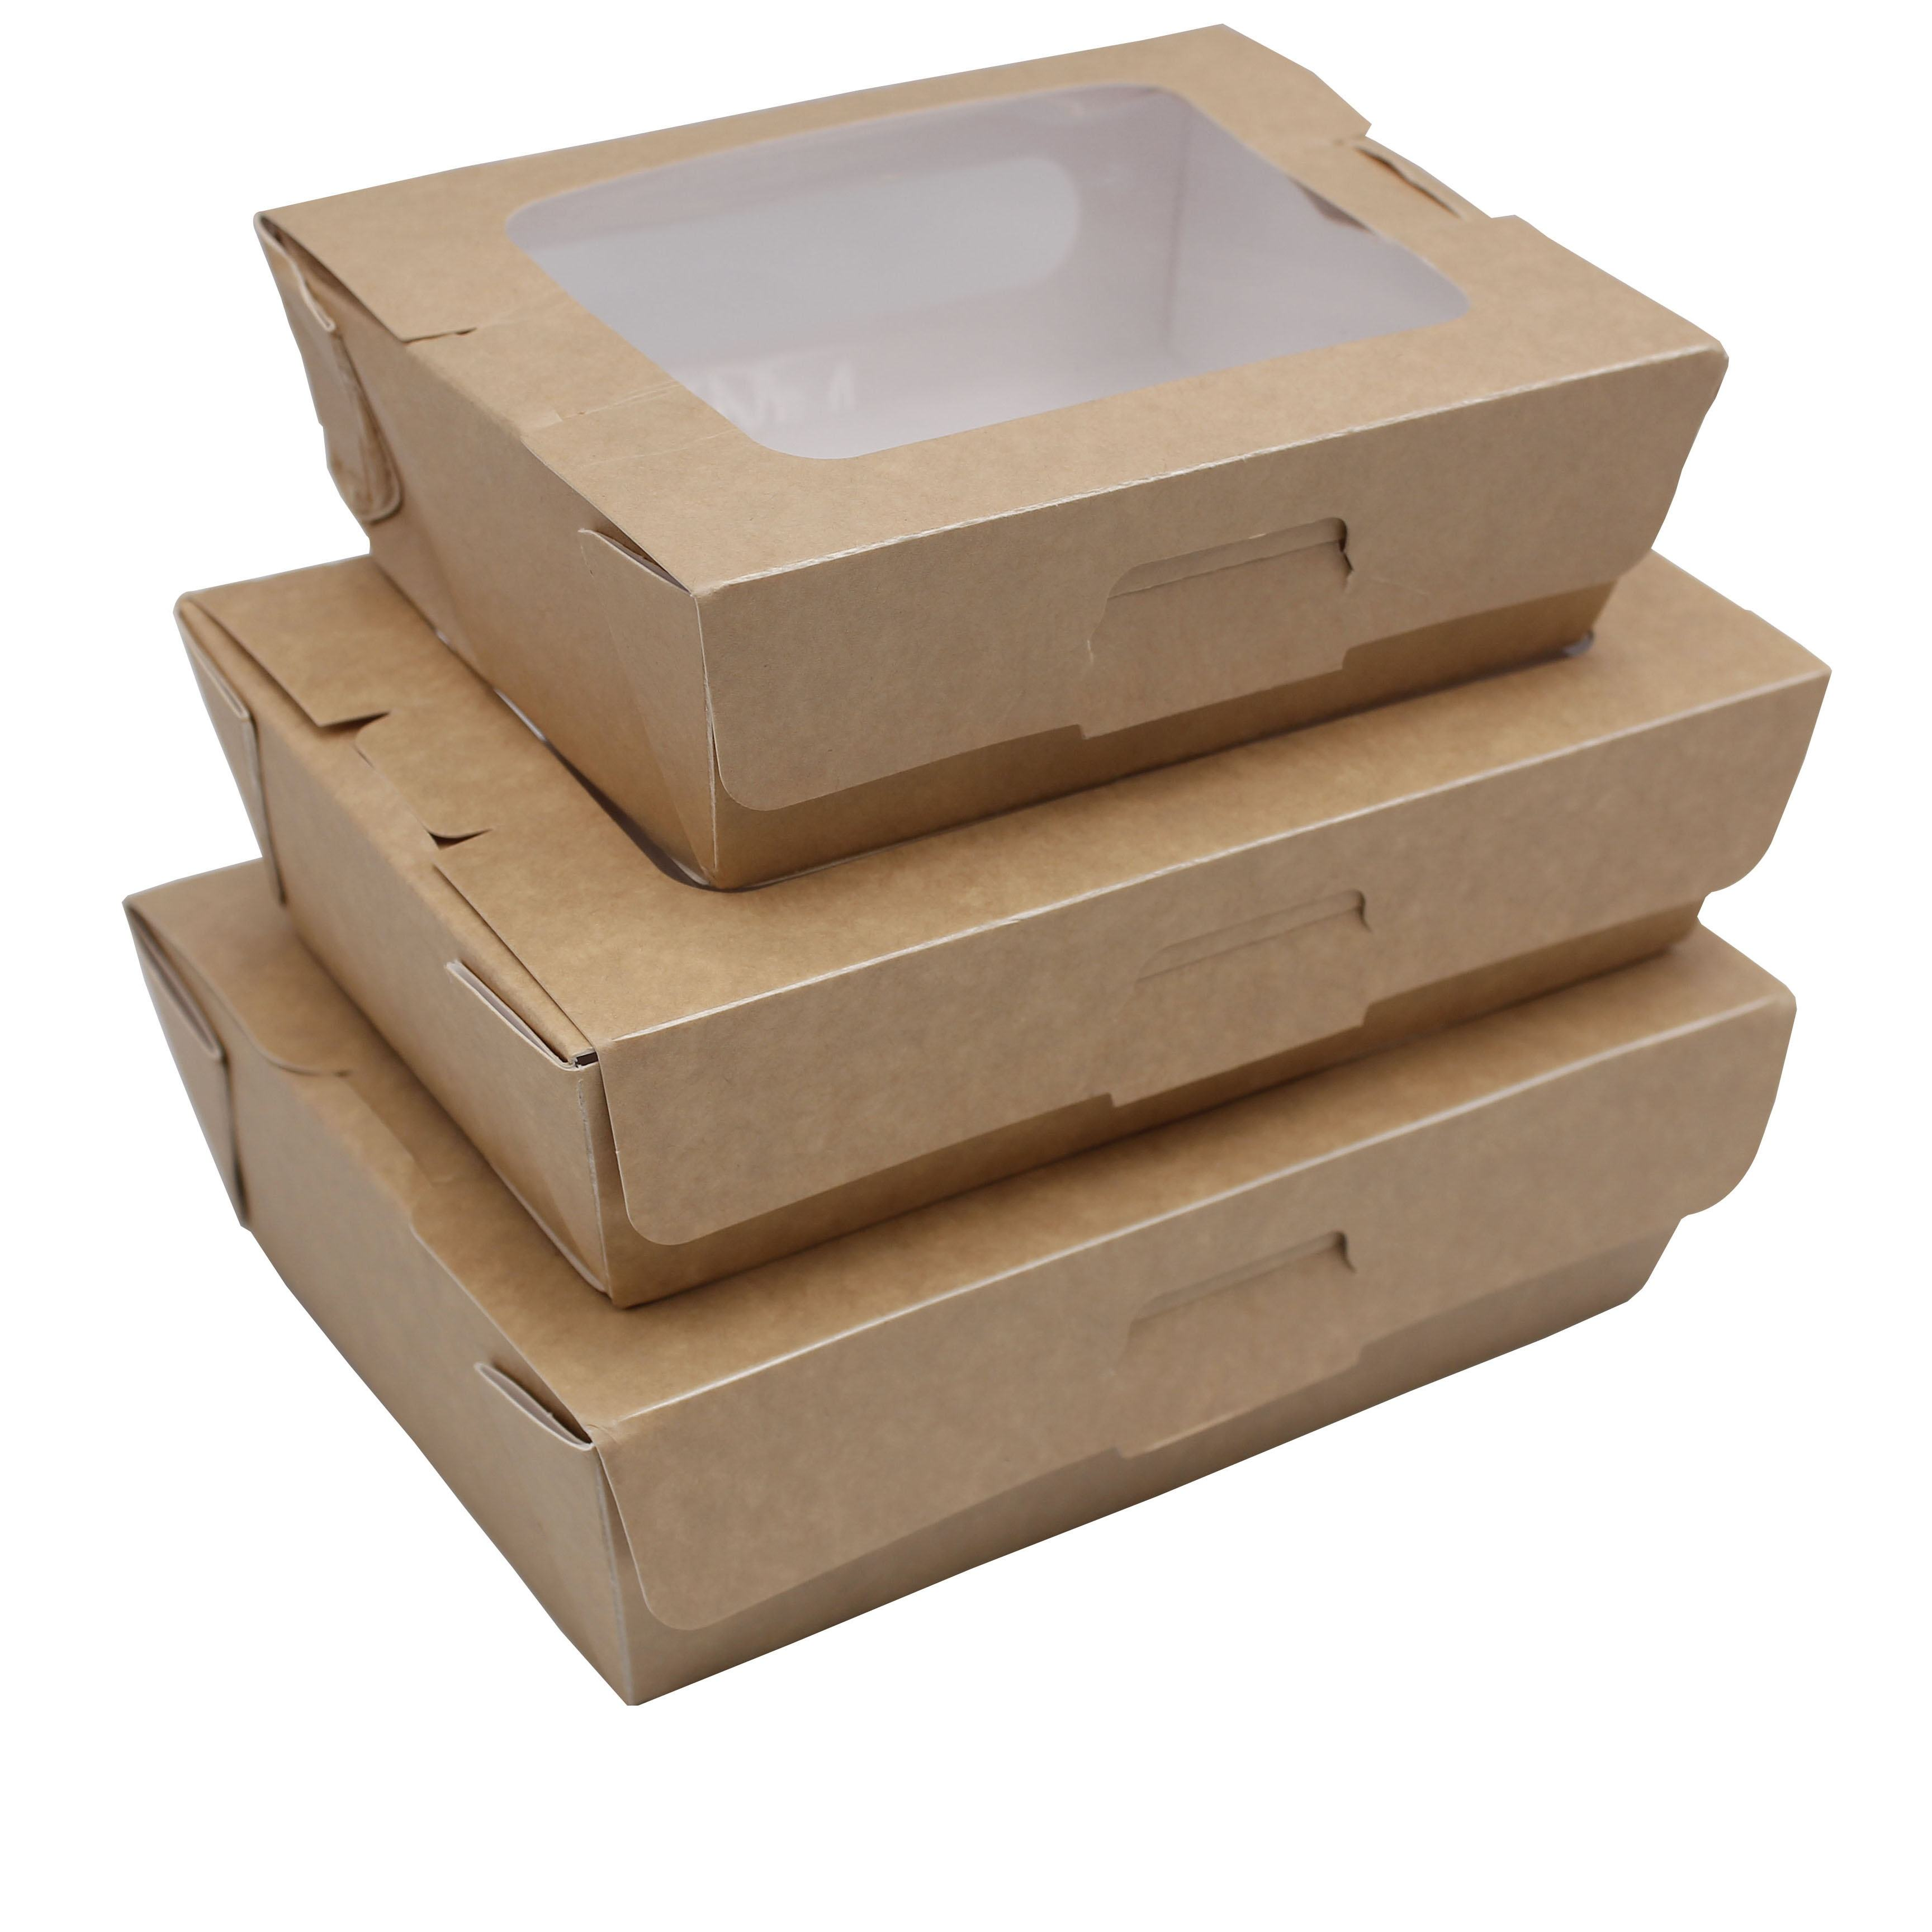 food container with windows packaging disposable craft takeaway paper box for restaurant